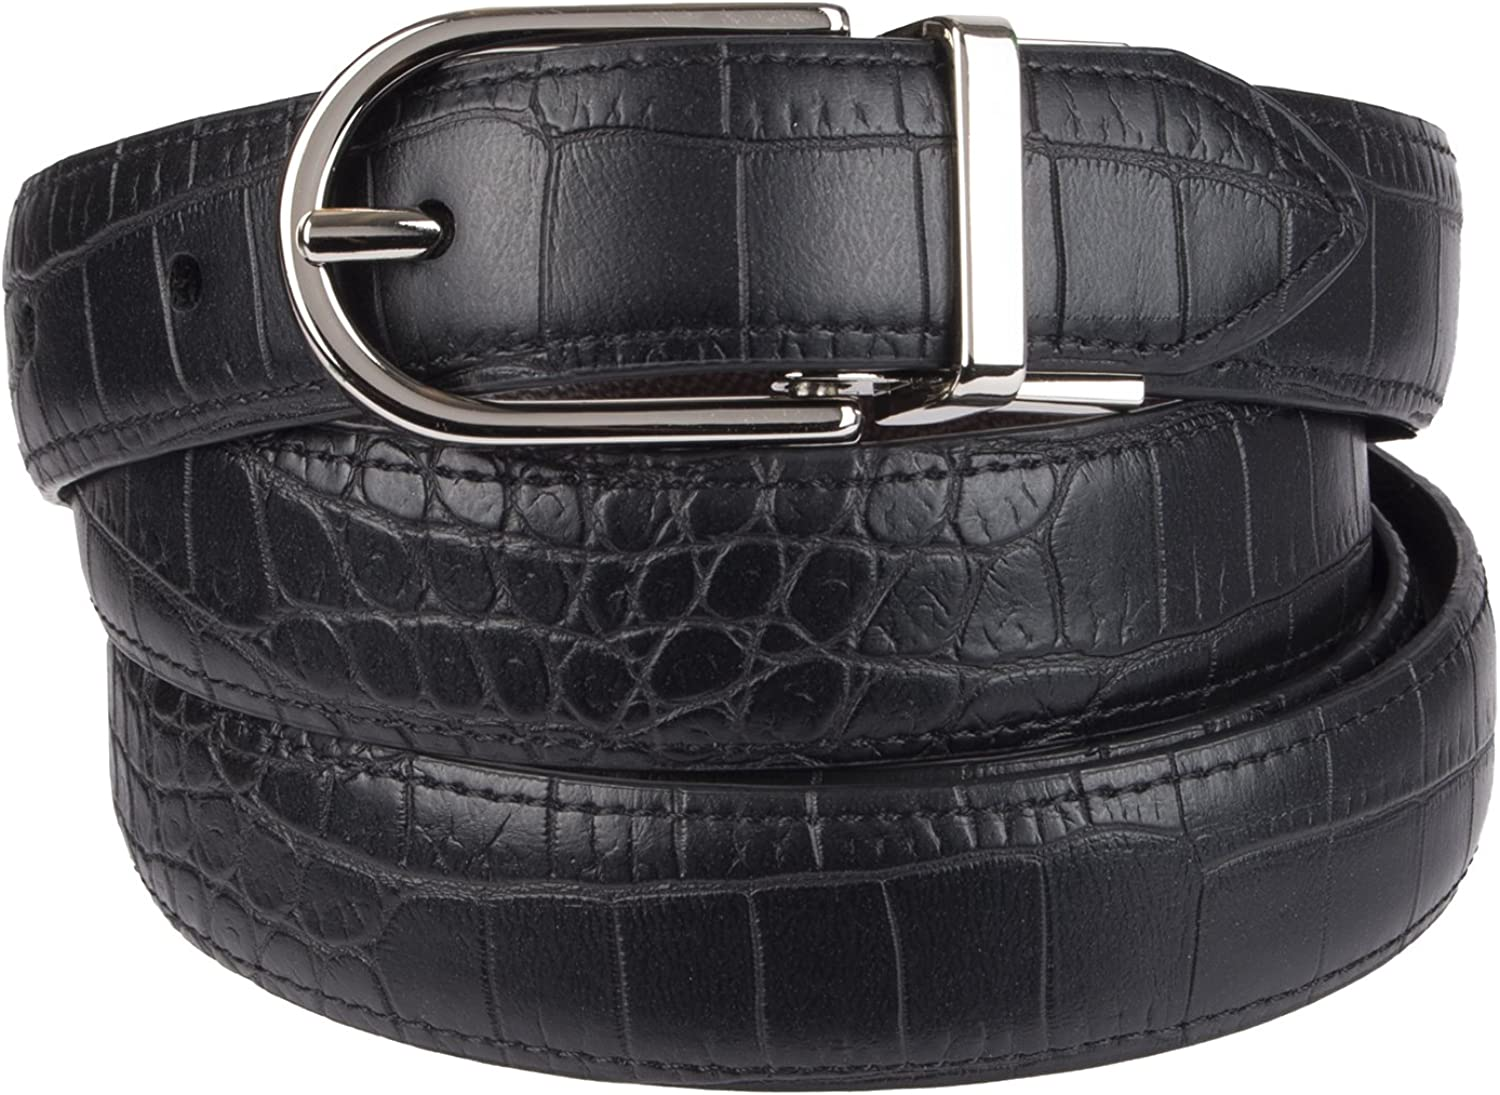 Chaps Women's Reversible Belt Technology Sale SALE% OFF service with Stretch